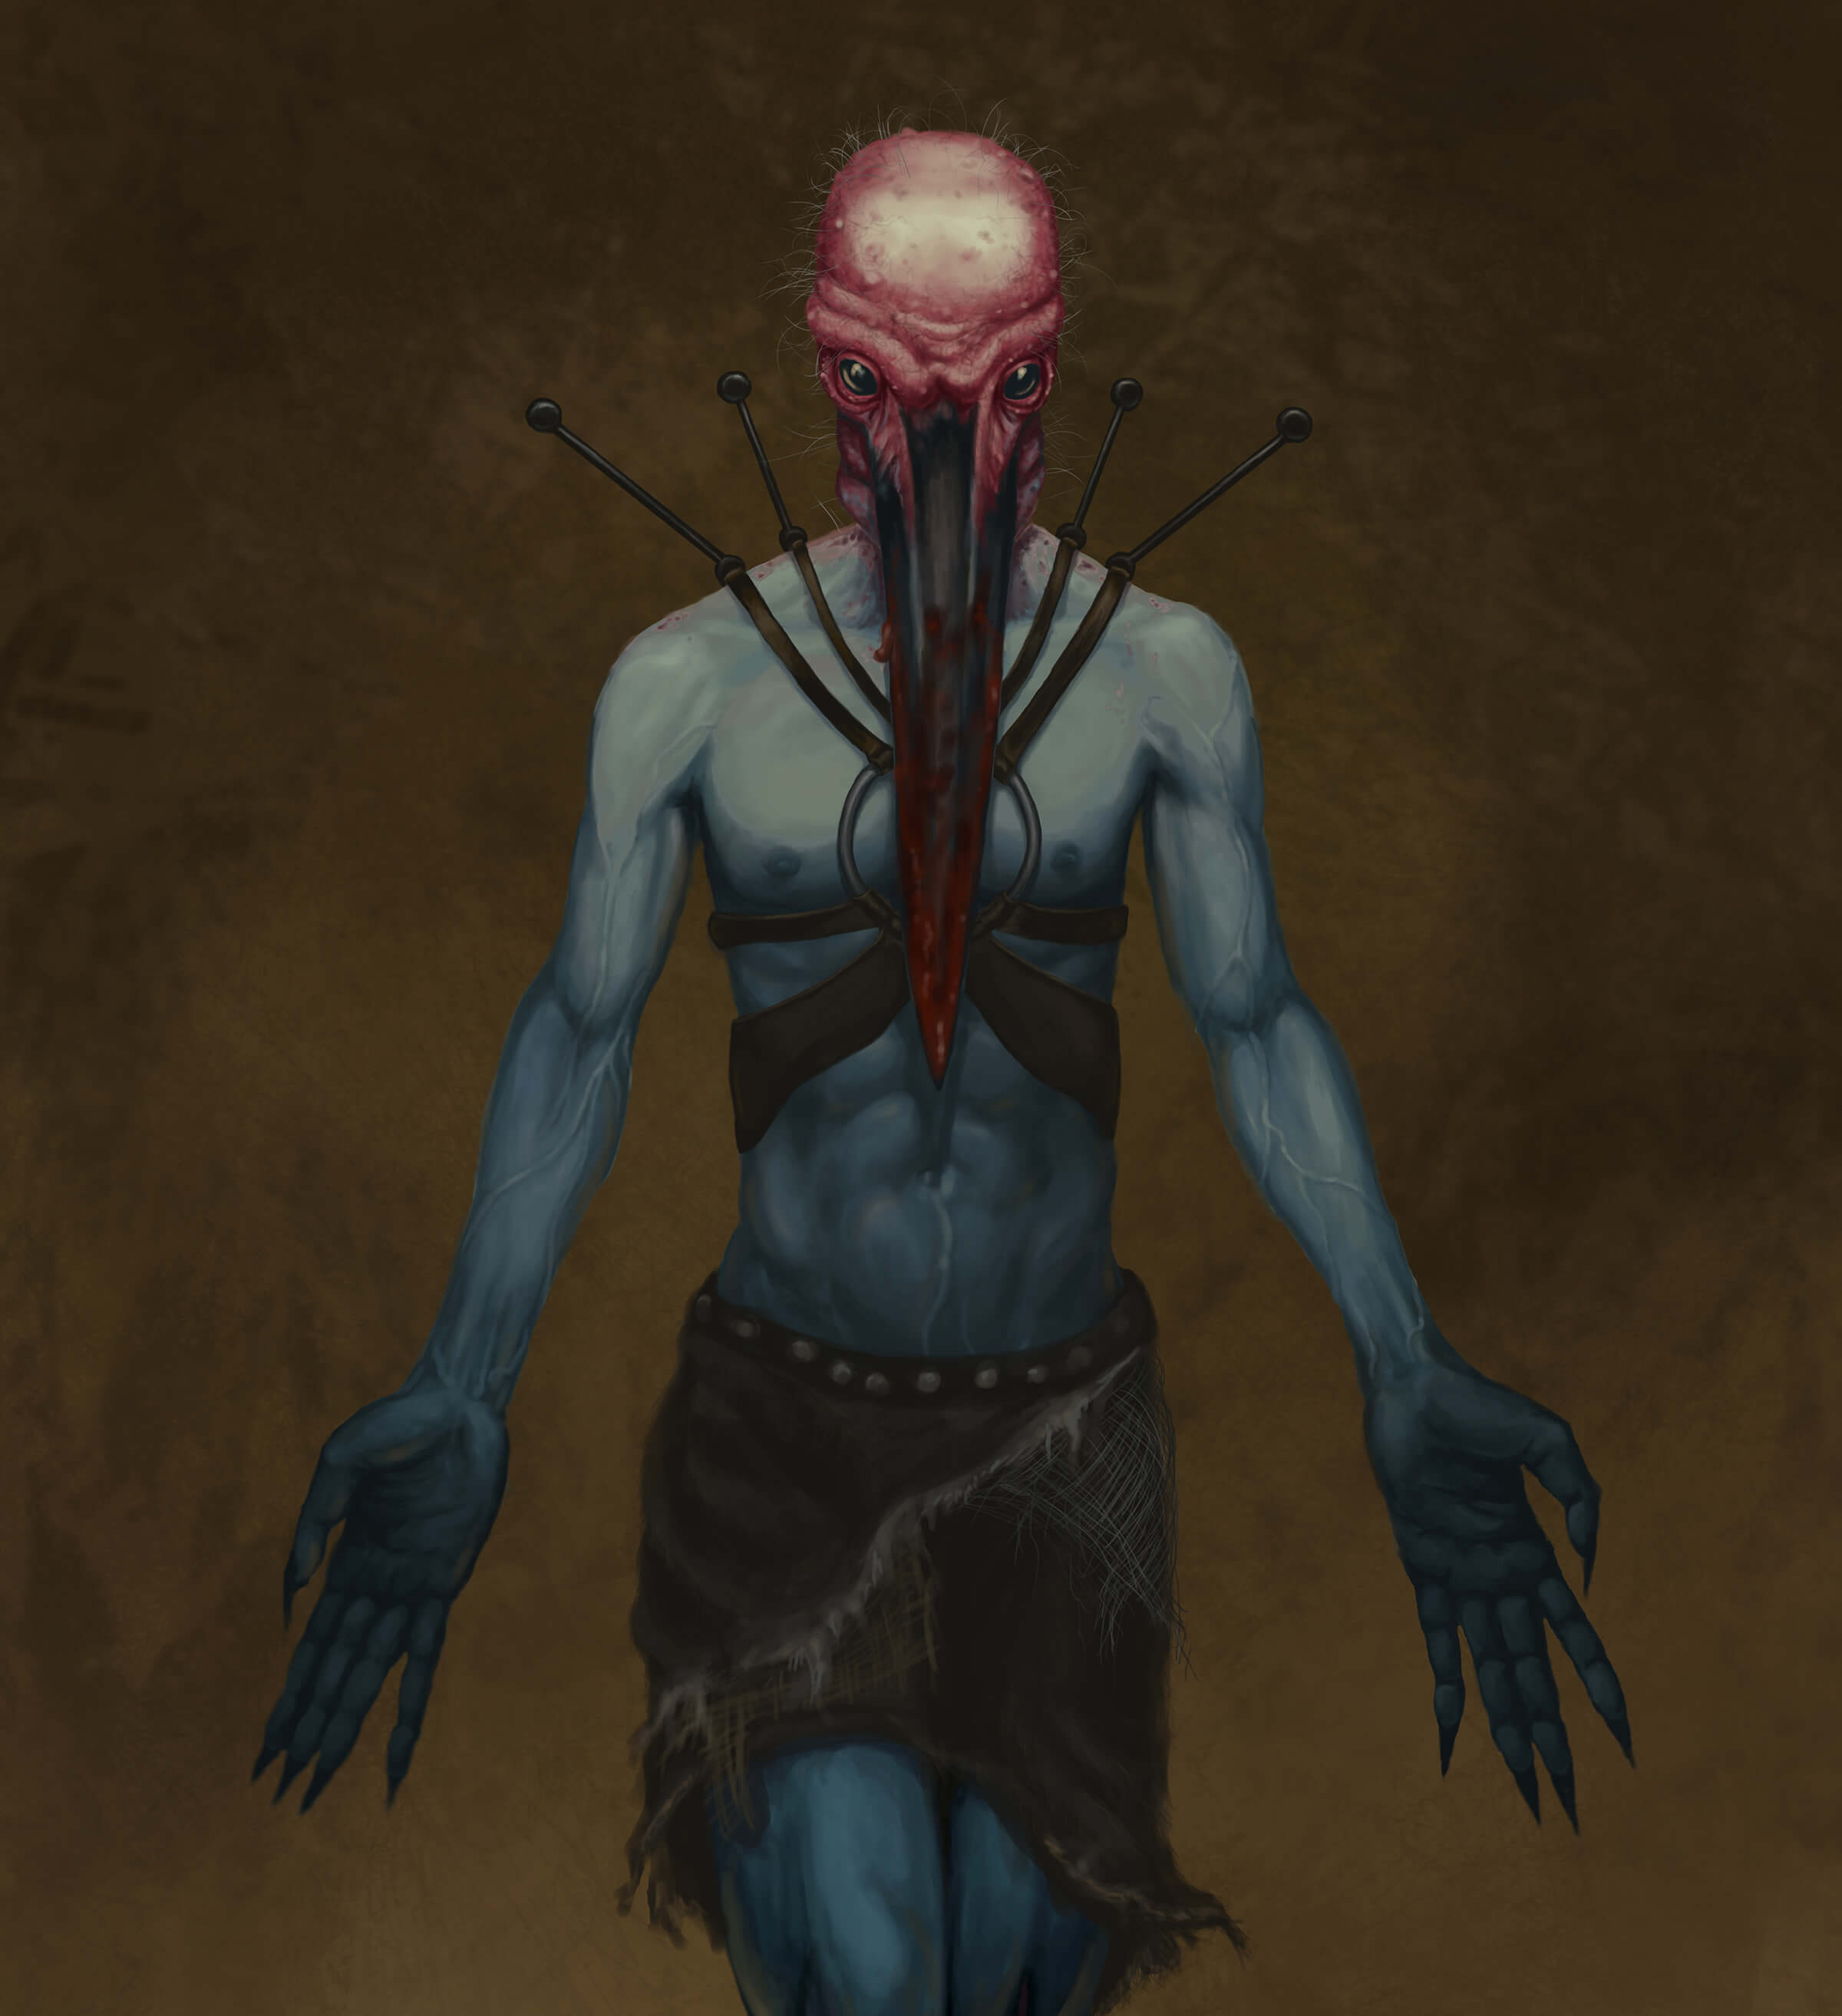 digital painting of a blue-skinned man with the head of an octopus and long fingers